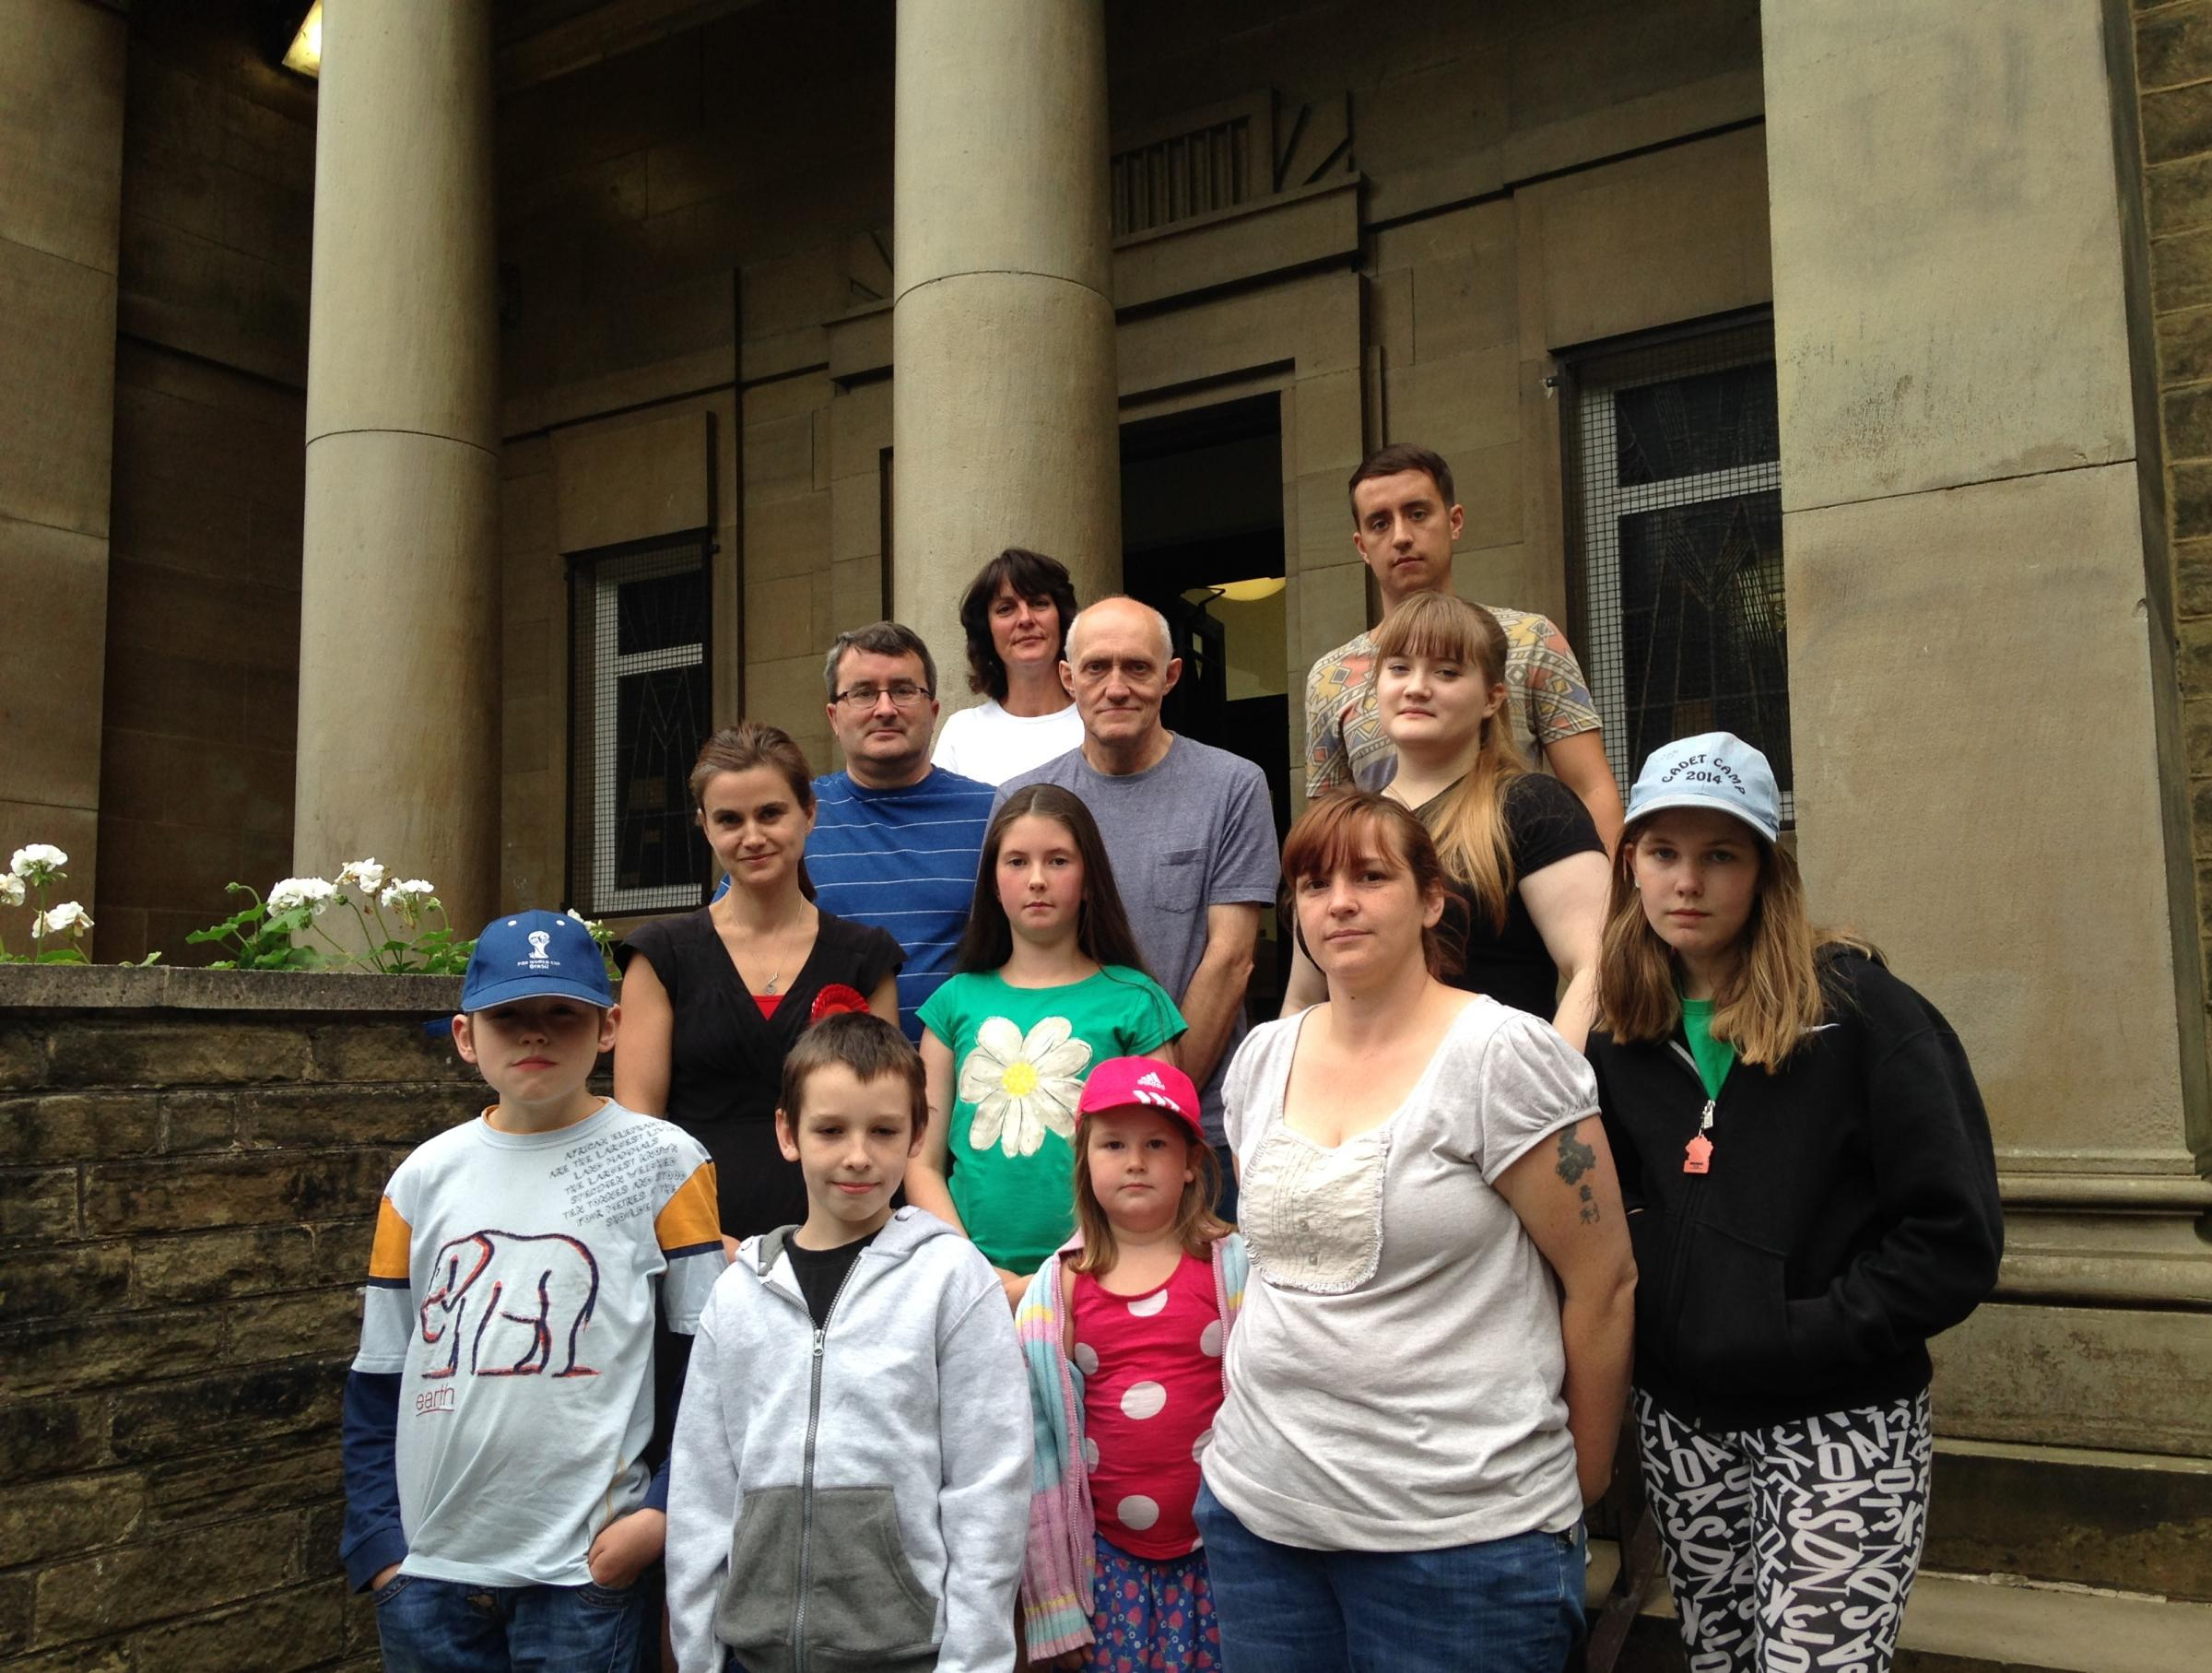 DETERMINED: A group of campaigners outside Cleckheaton Library